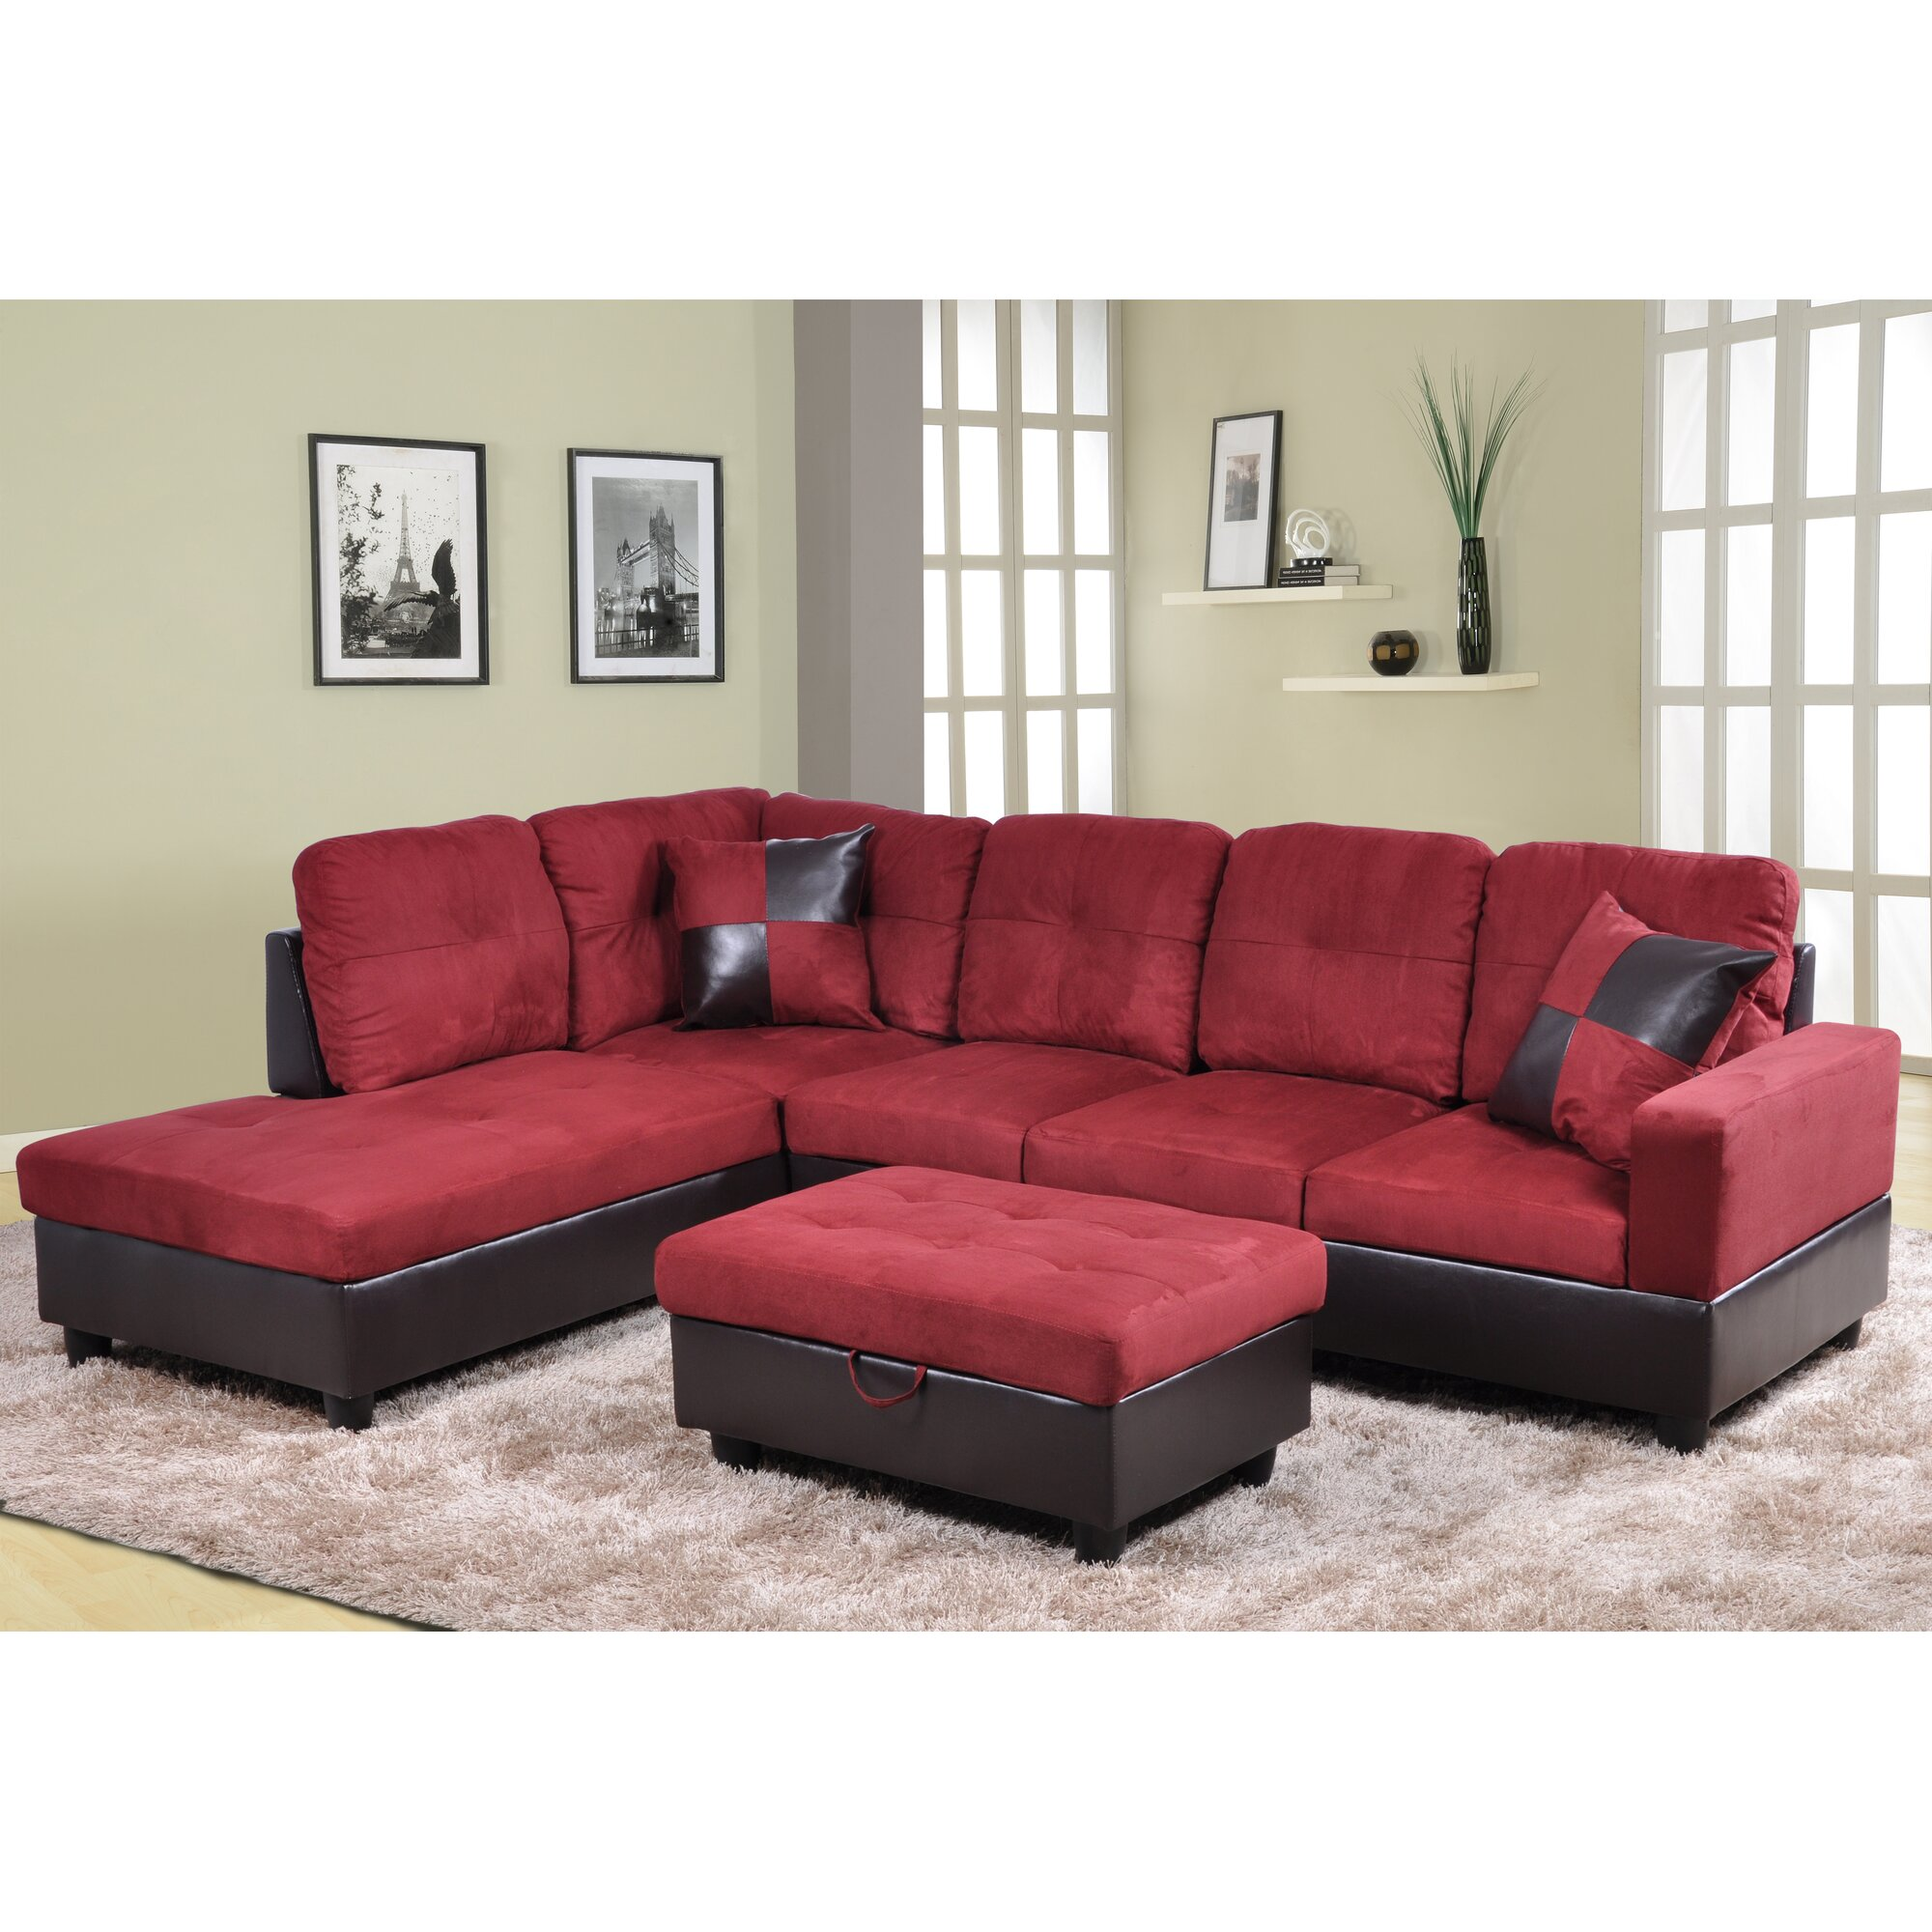 Couch With Chaise Storage Living Room Ottoman With Storage Wooden - Couches with storage